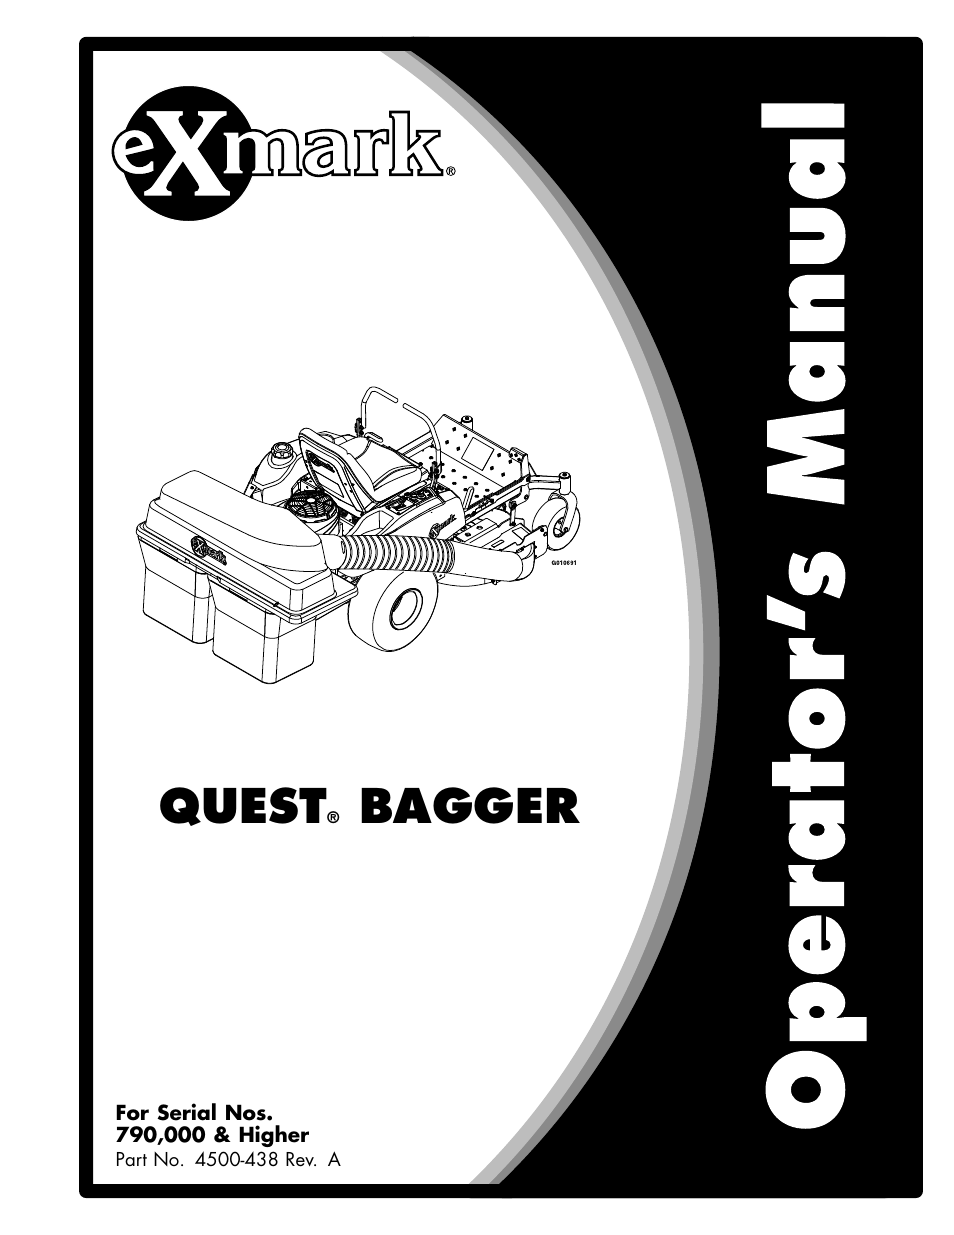 exmark quest bagger 4500 438 rev a user manual 24 pages rh manualsdir com Exmark Quest Electric Brake Controller Exmark Quest Electric Brake Controller